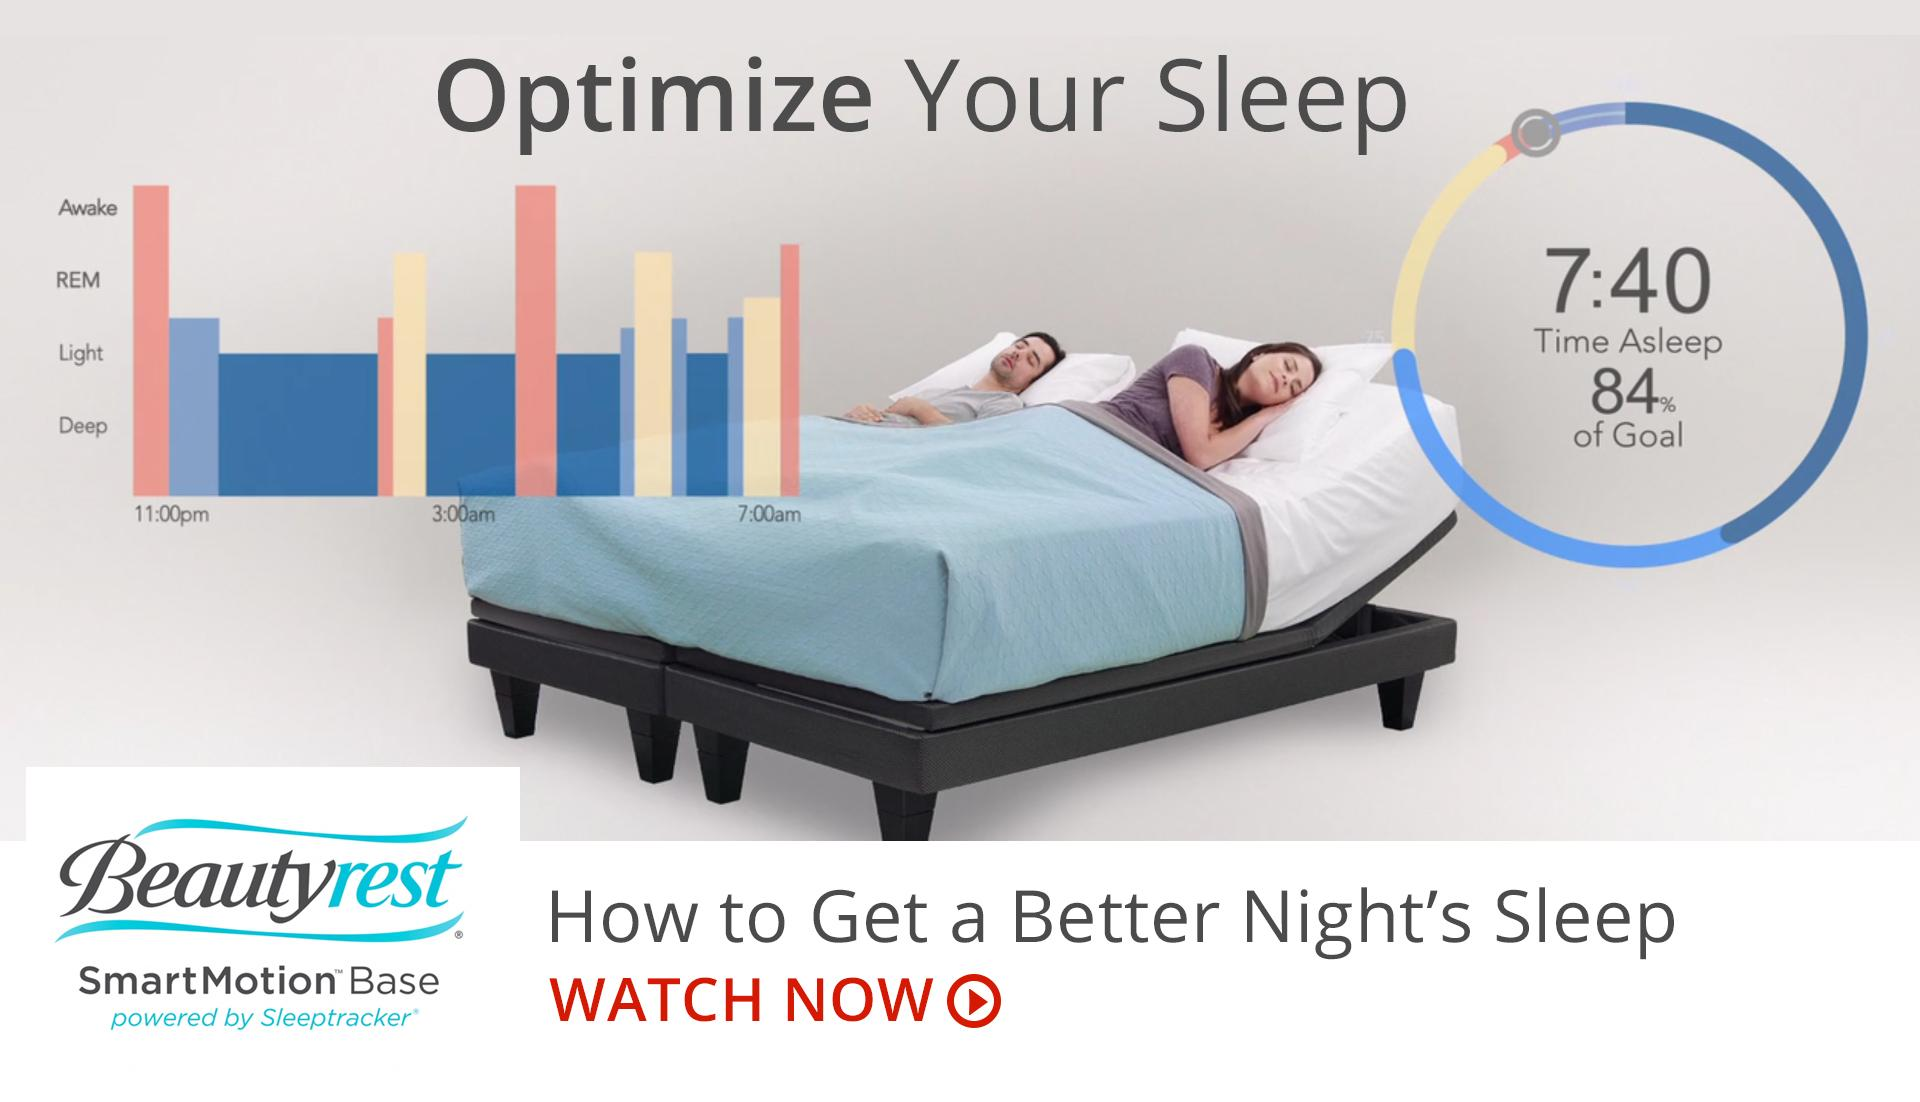 Find Your Optimal Sleep with SmartMotion by Beautyrest